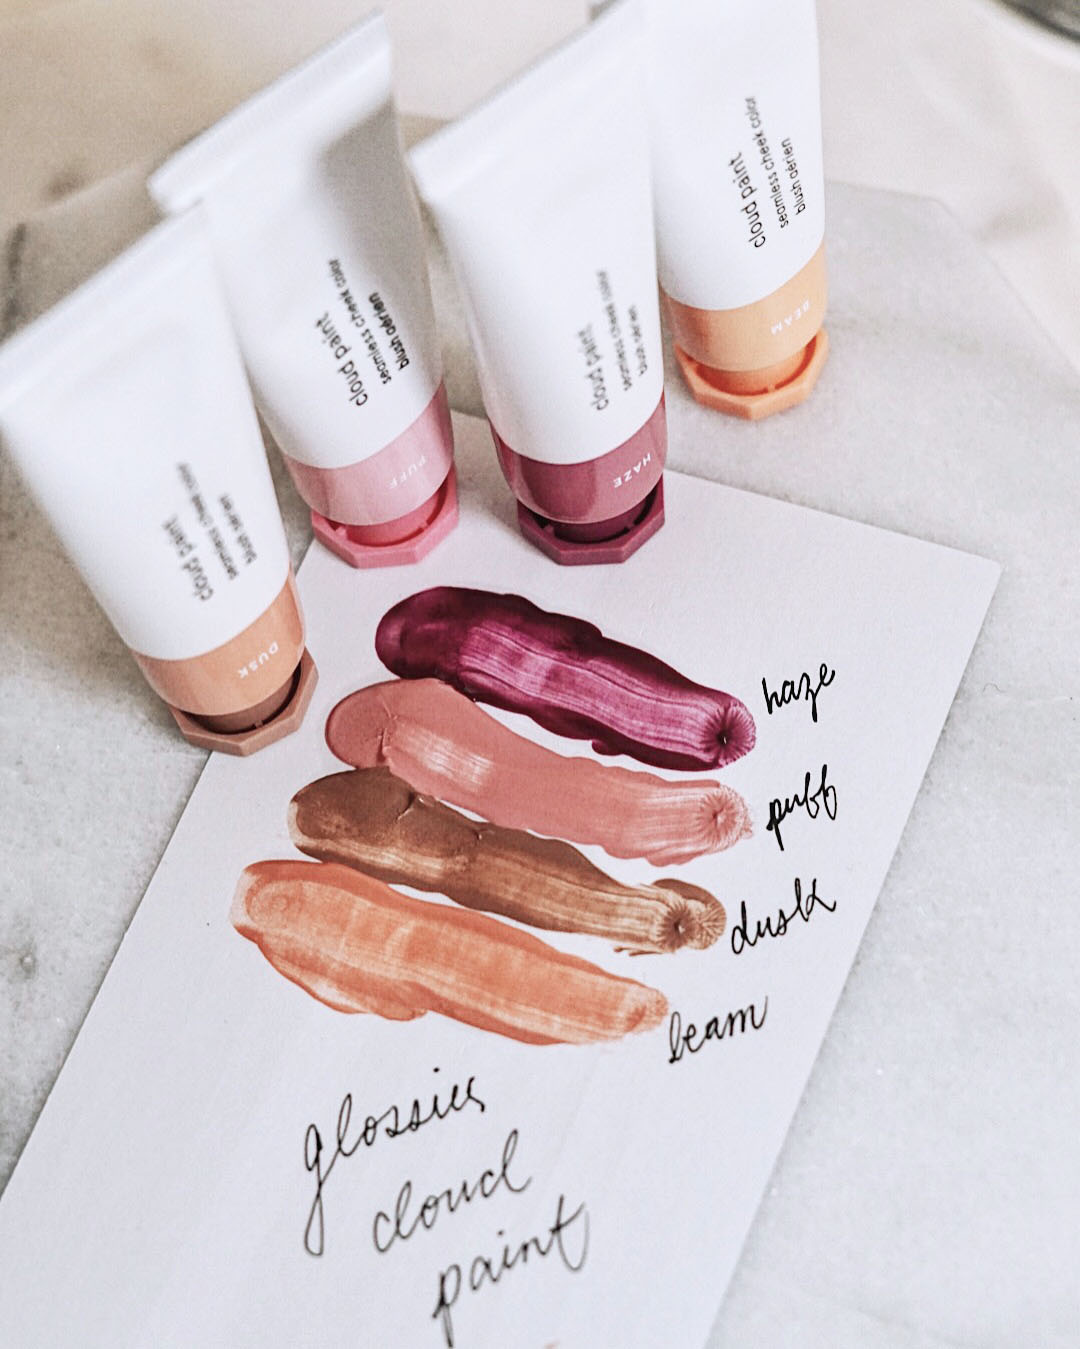 Glossier Cloud Paint | Review + Swatches — c i n d y h y u e